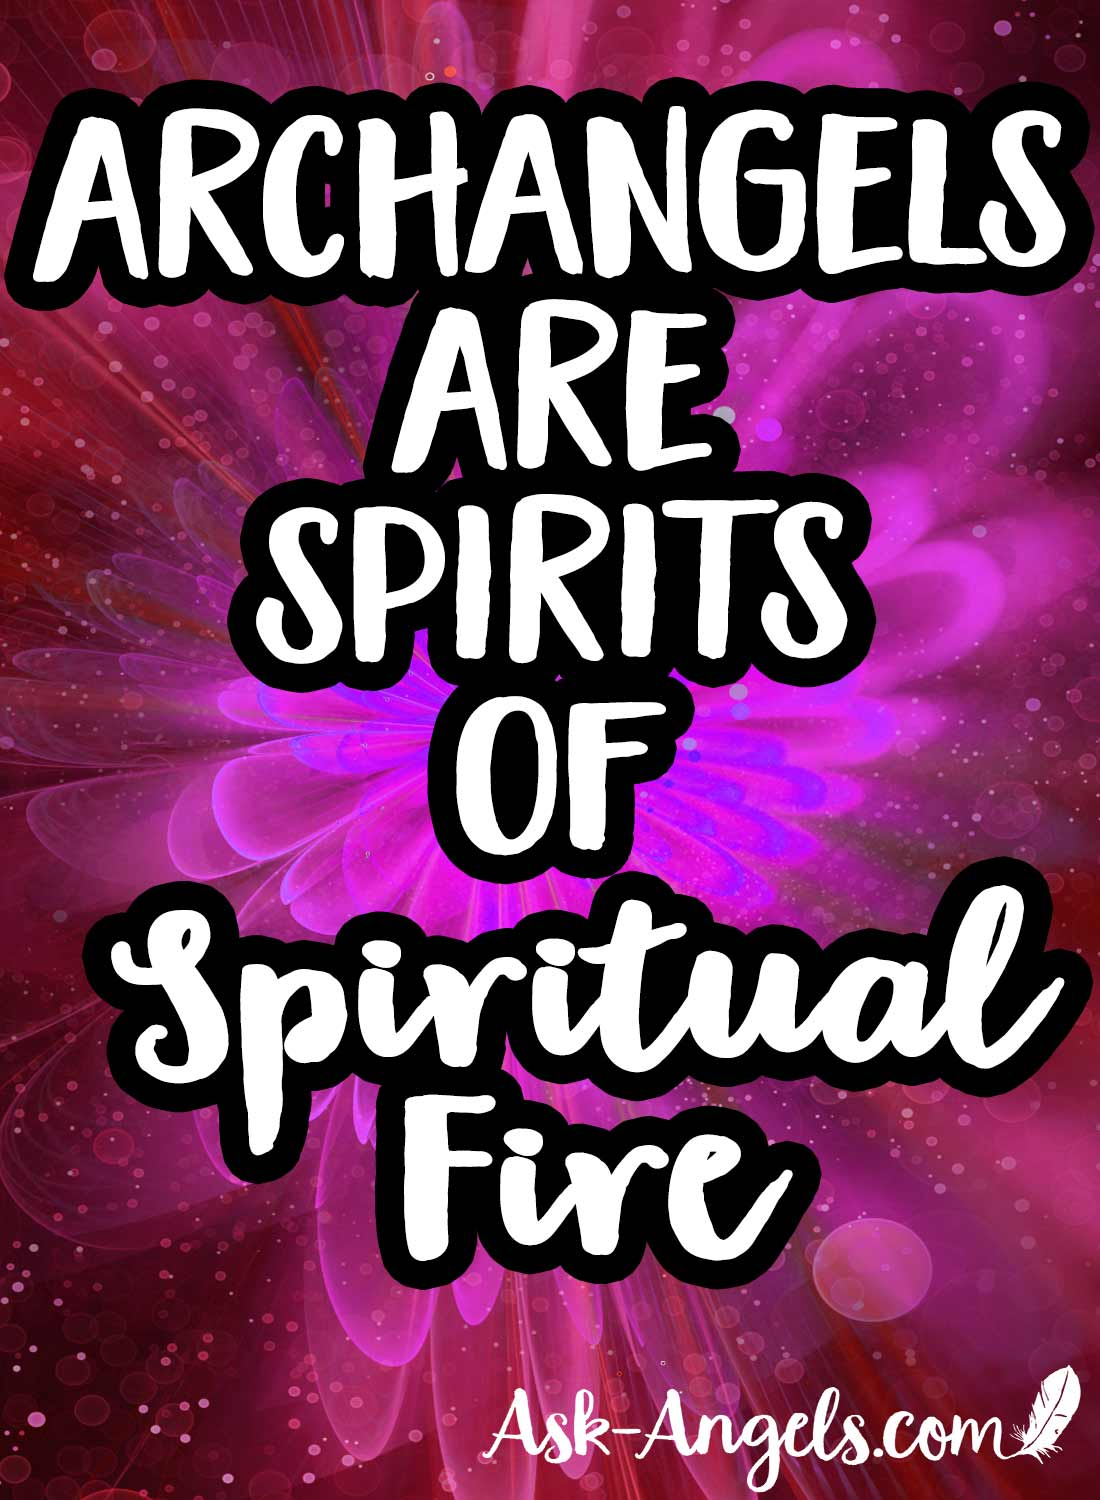 Archangels are Spirits of Spiritual Fire